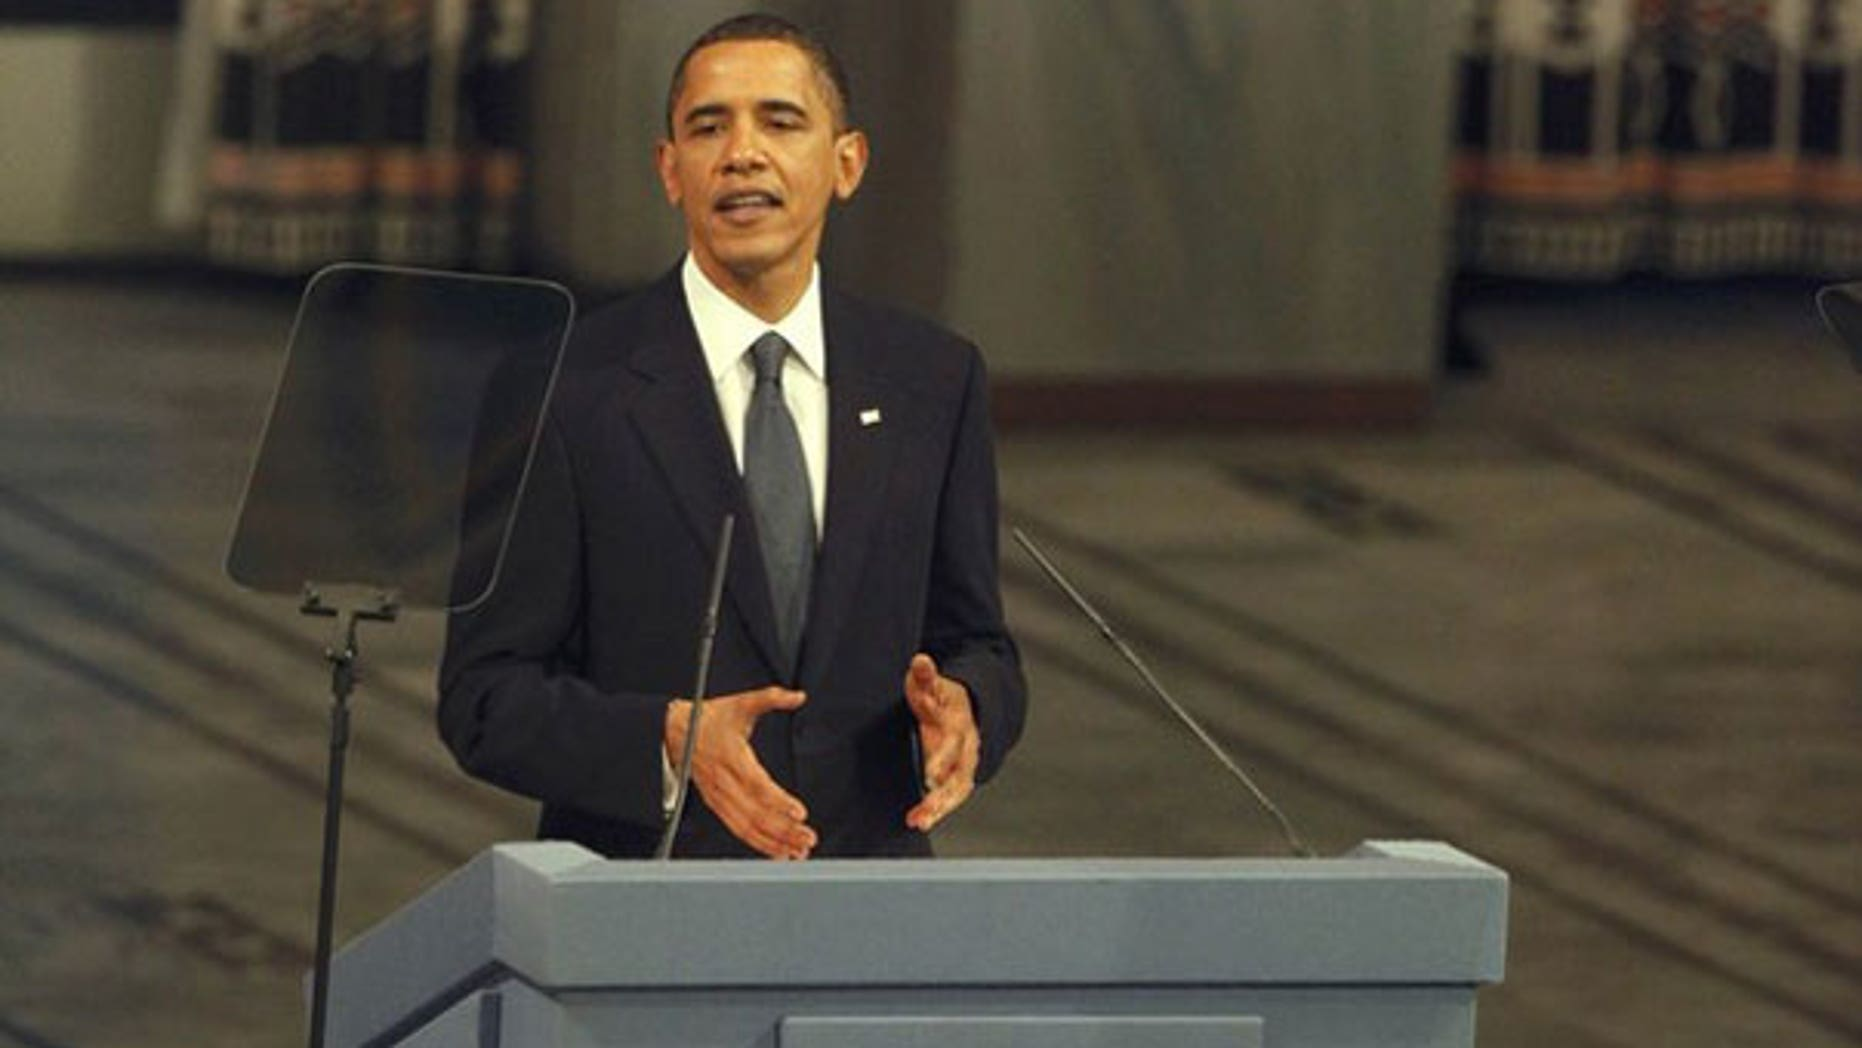 Dec. 10: Nobel Peace Prize laureate President Obama delivers the Nobel Lecture during the Nobel Peace Prize award ceremony in Oslo City Hall (Reuters).